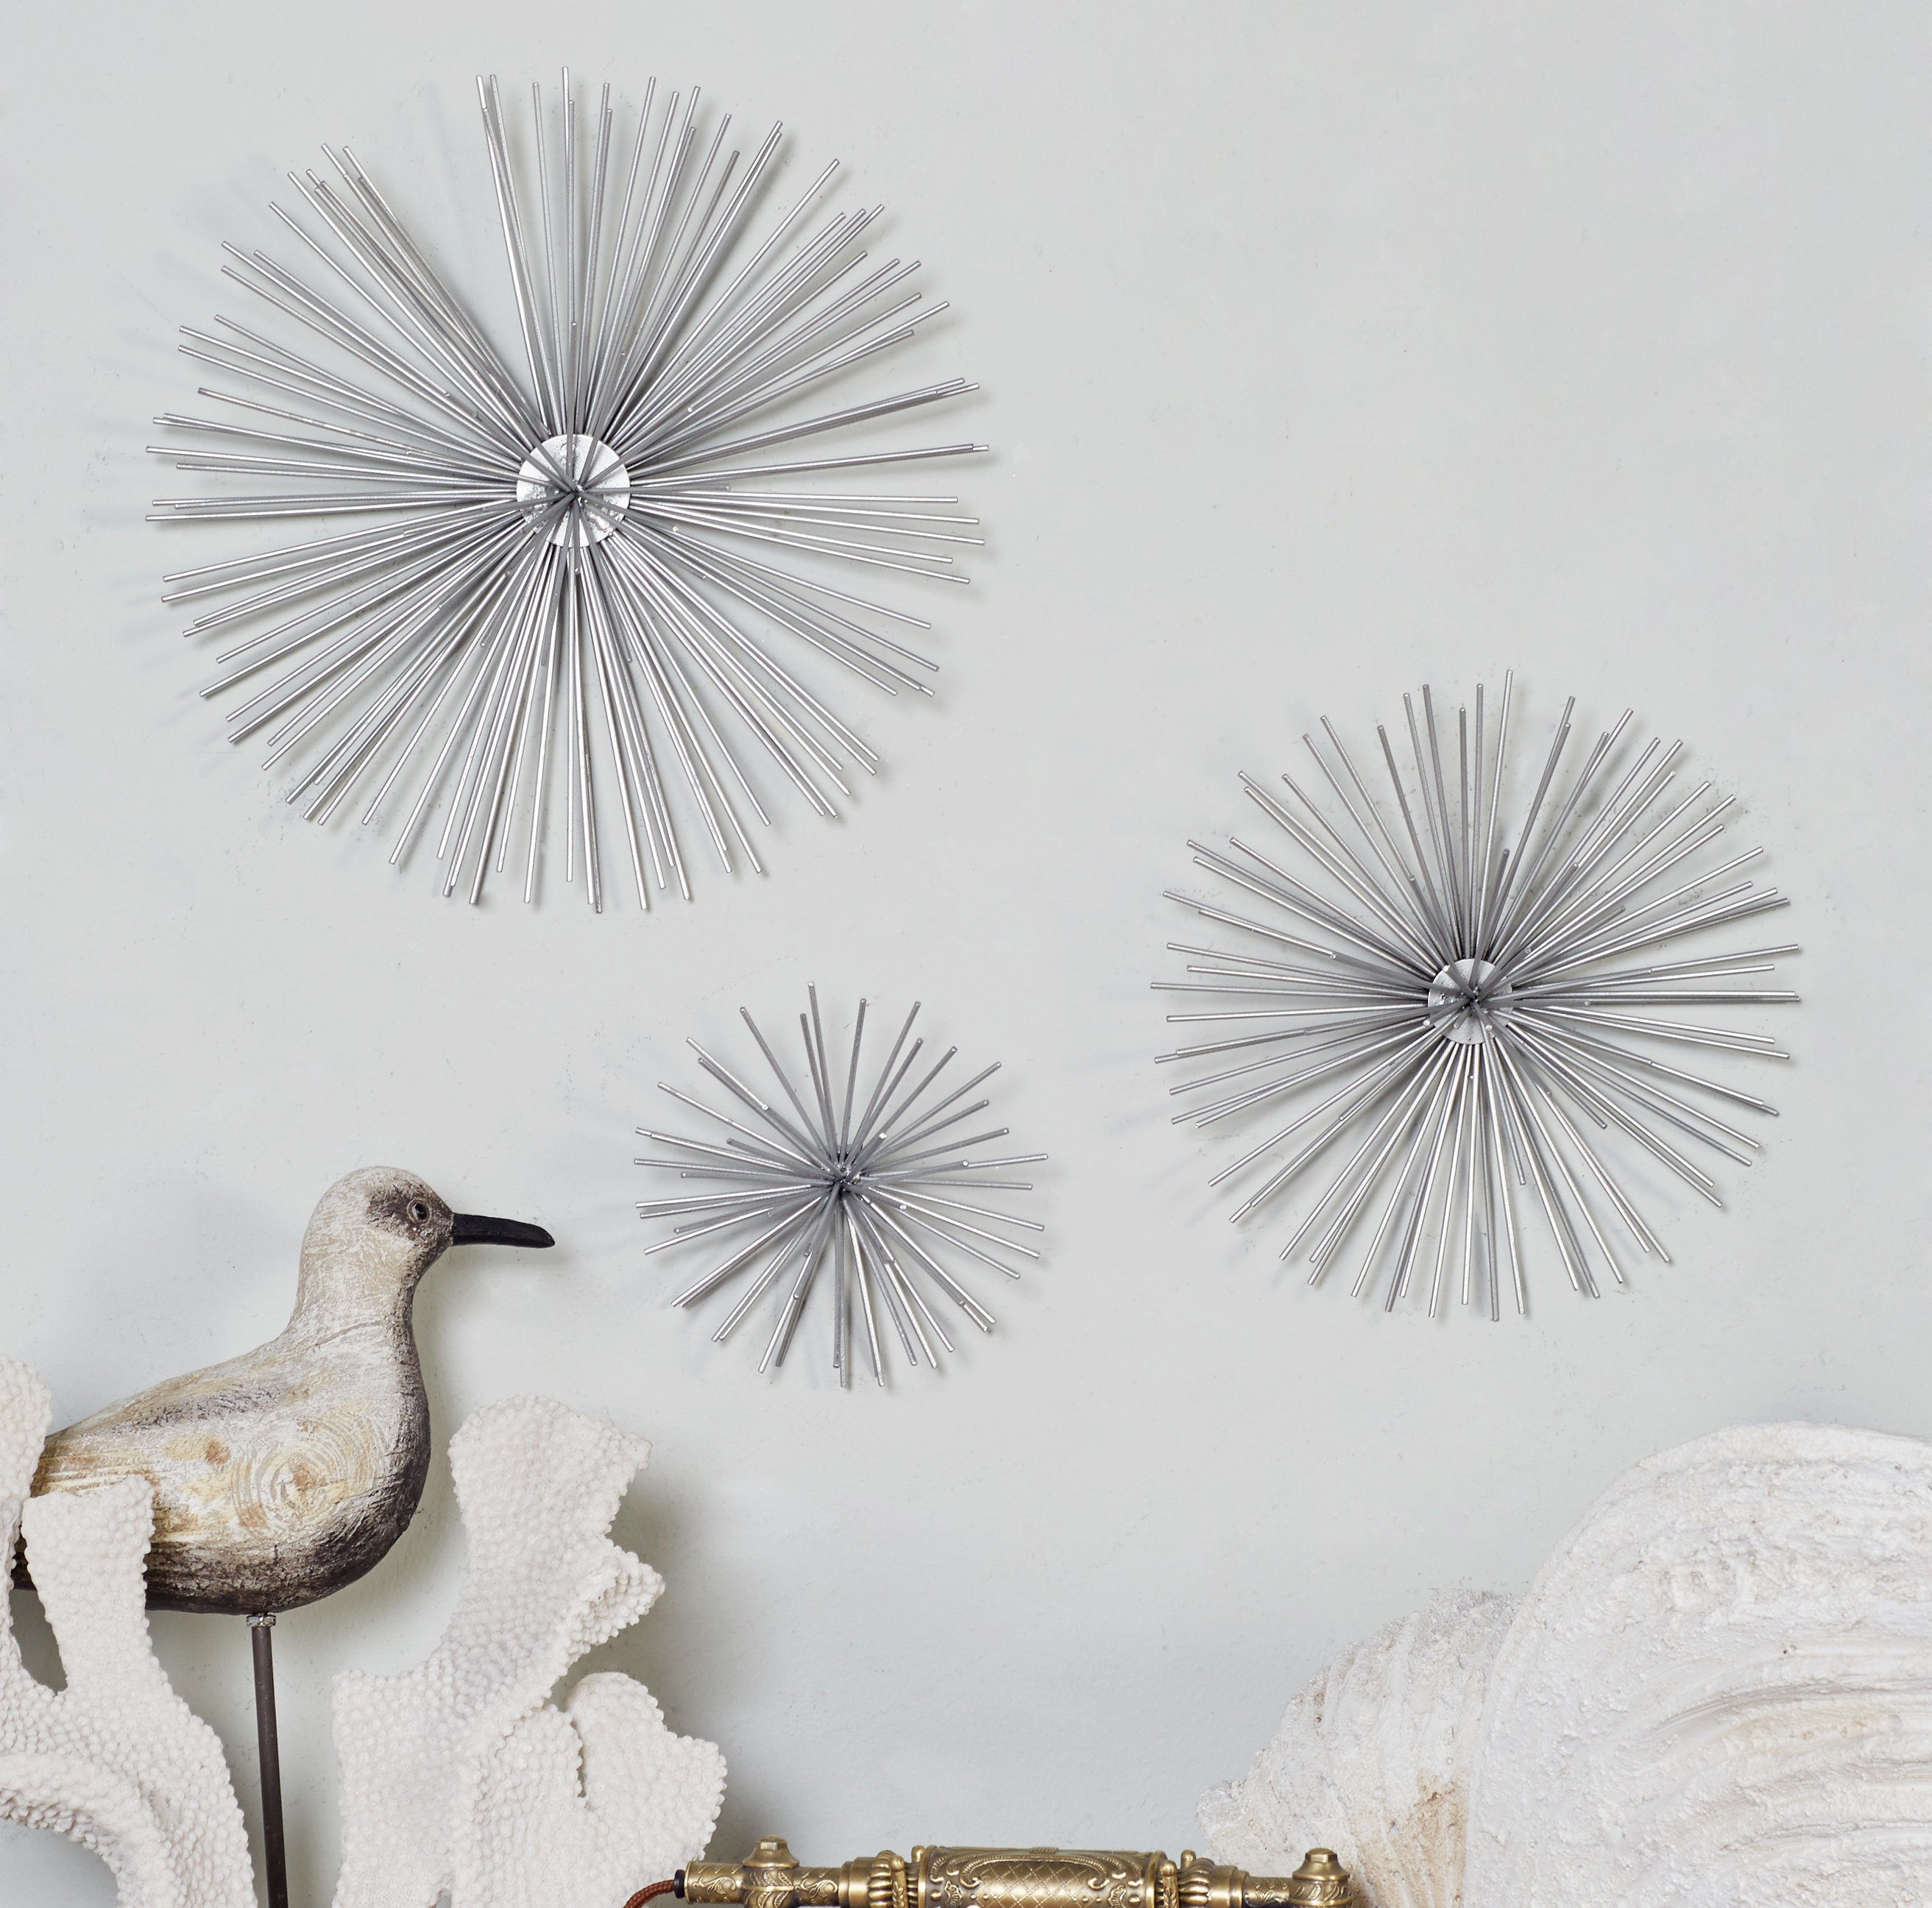 Cosmolivingcosmopolitan 3 Piece Star Wall Decor Set in 3 Piece Ceramic Flowers Wall Decor Sets (Image 18 of 30)